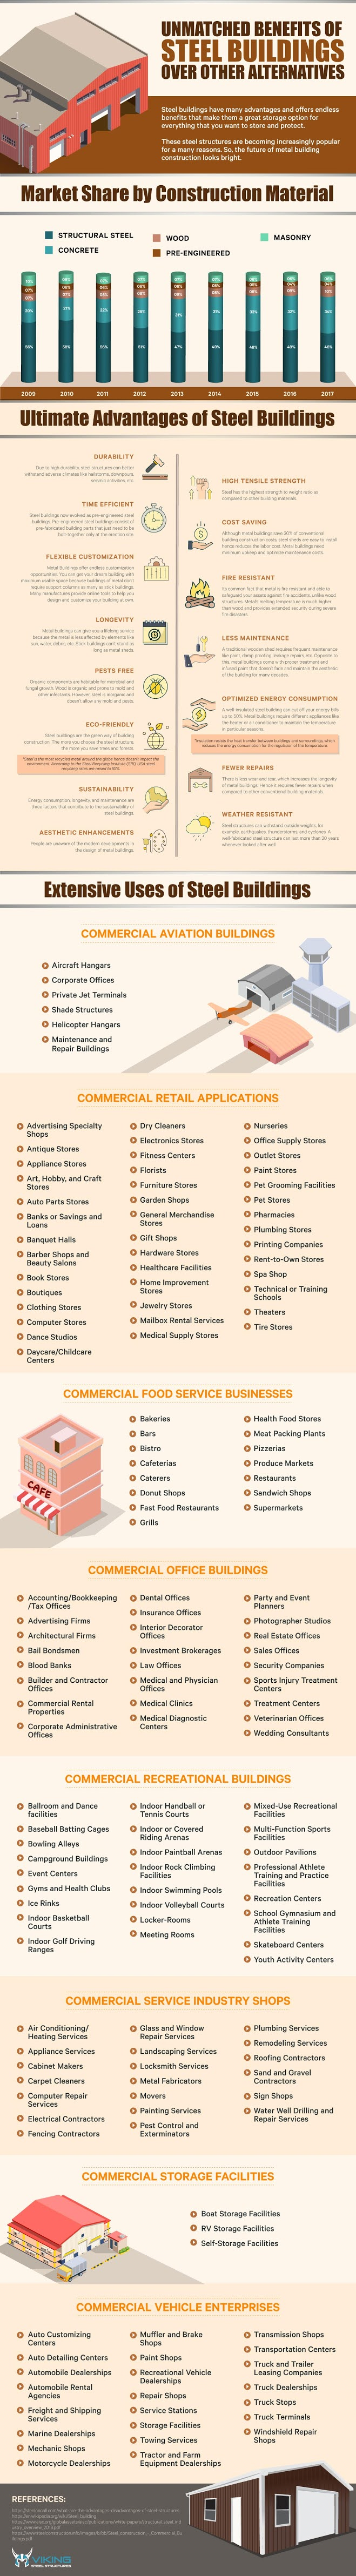 Unmatched Benefits of Steel Buildings over Other Alternatives #infographic #Construction #Steel Buildings #Benefits of Steel Buildings